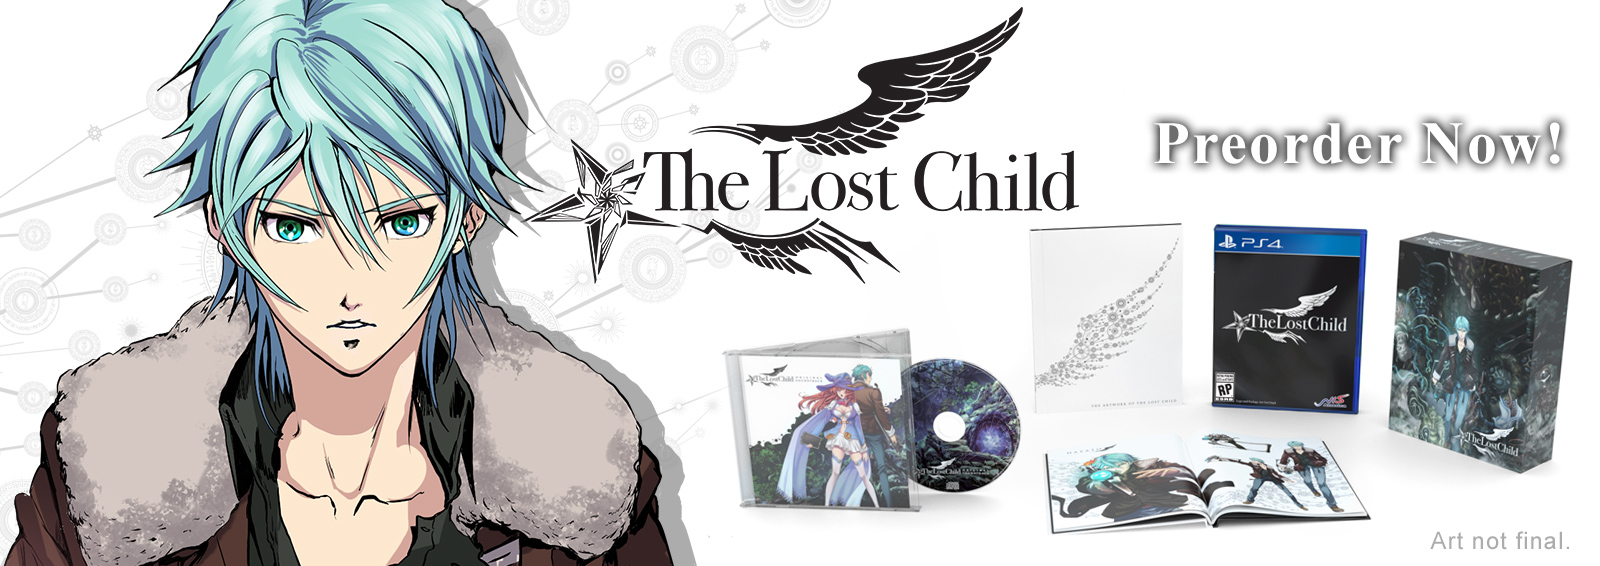 The Lost Child Limited Edition